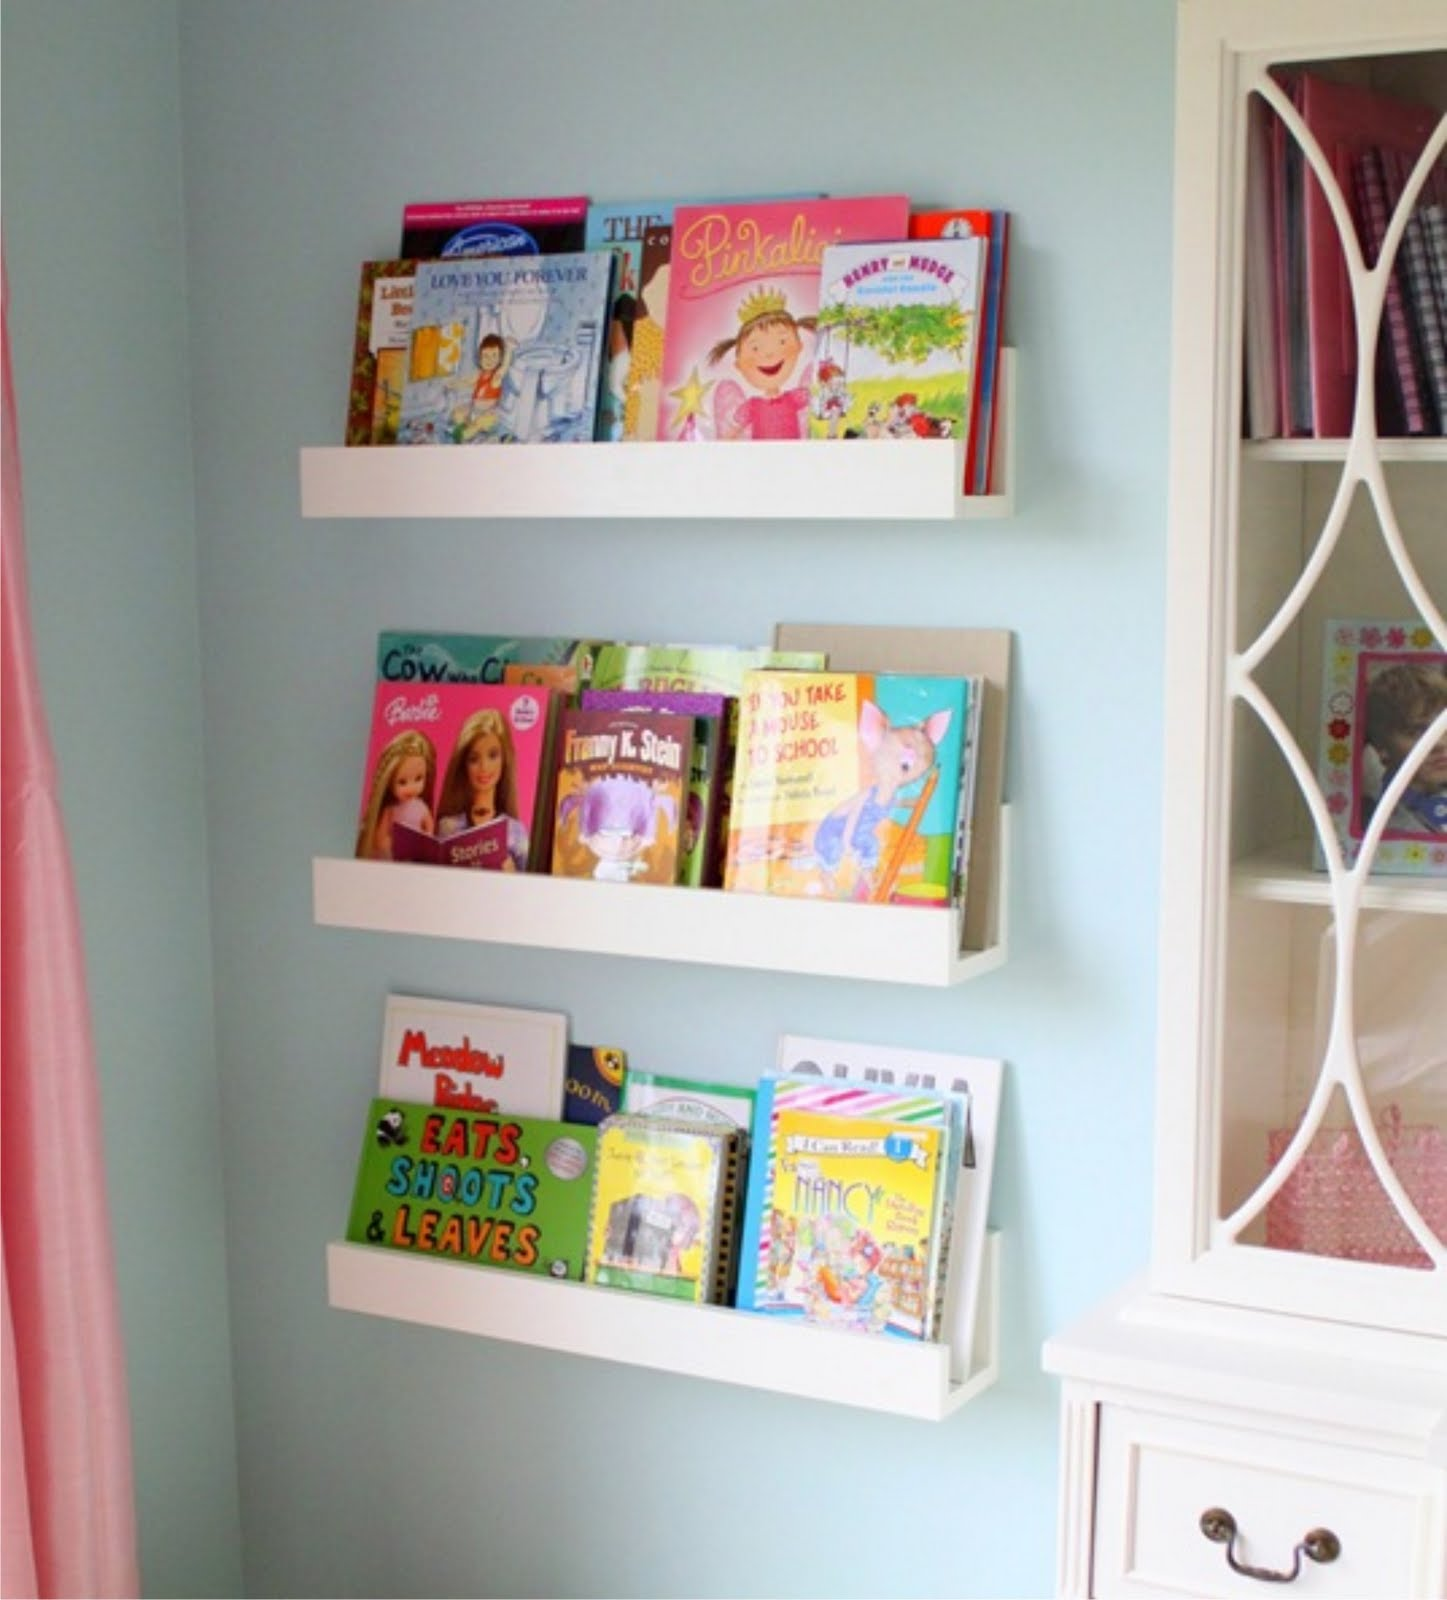 Winks u0026 Daisies: DIY Wall Shelves